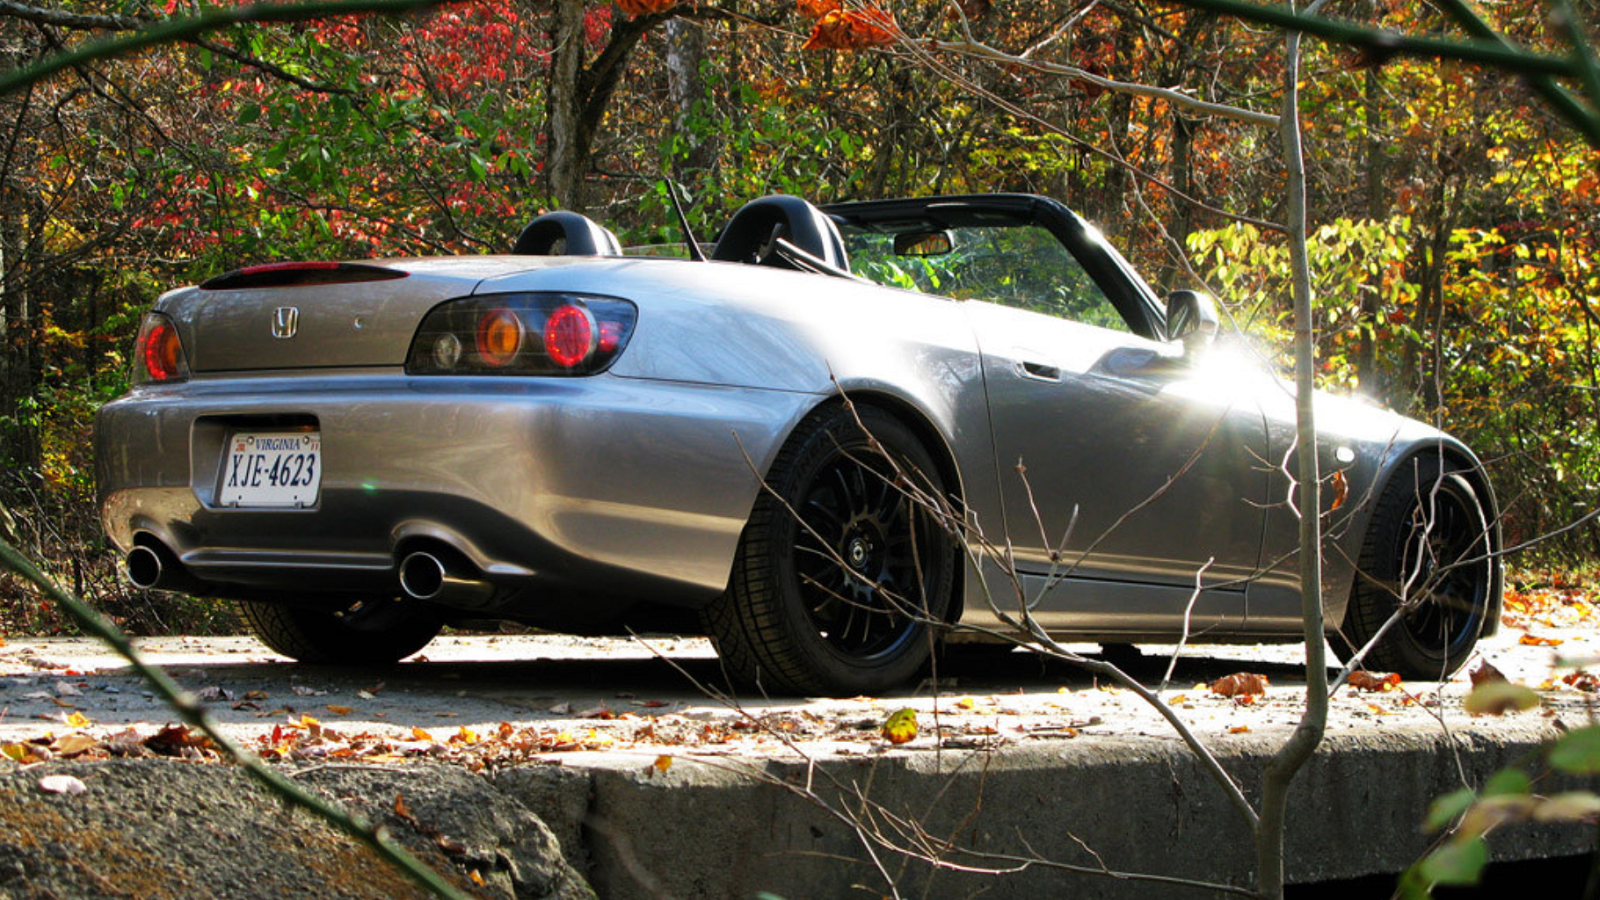 Mild S2000 Build Proves That Less Can Be More